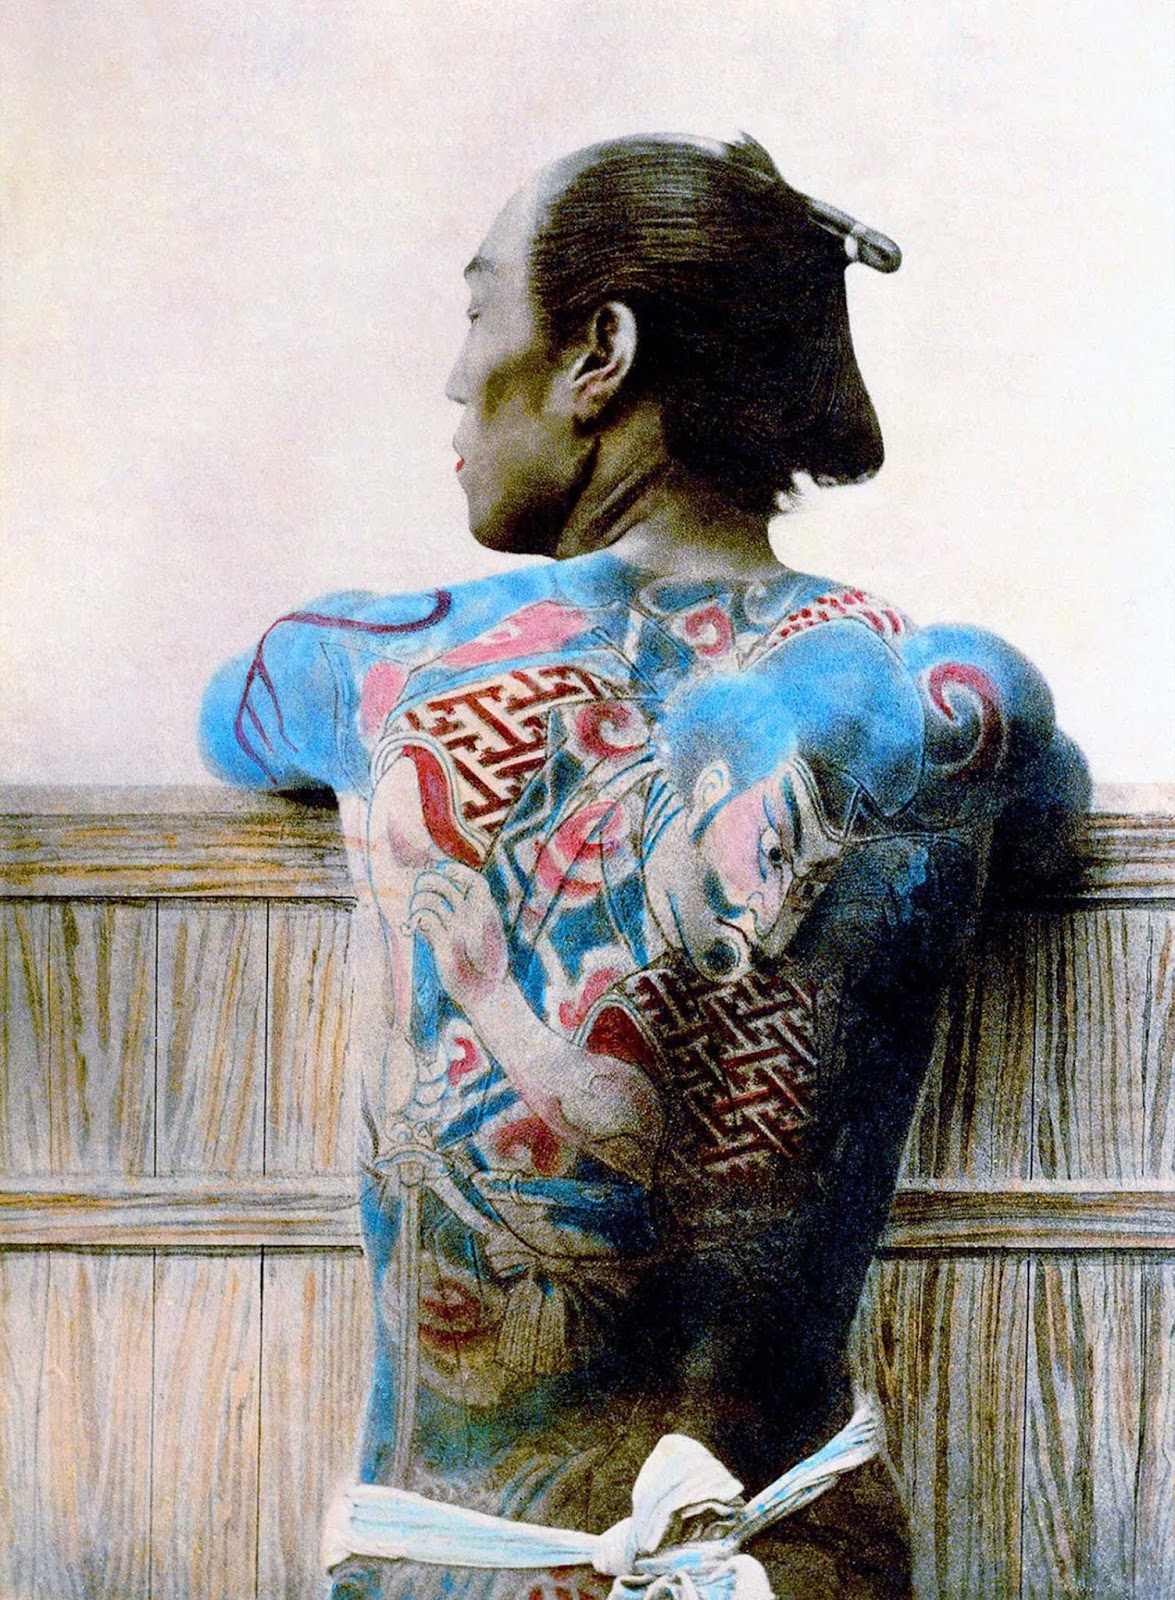 A tattooed man's back, c. 1875.